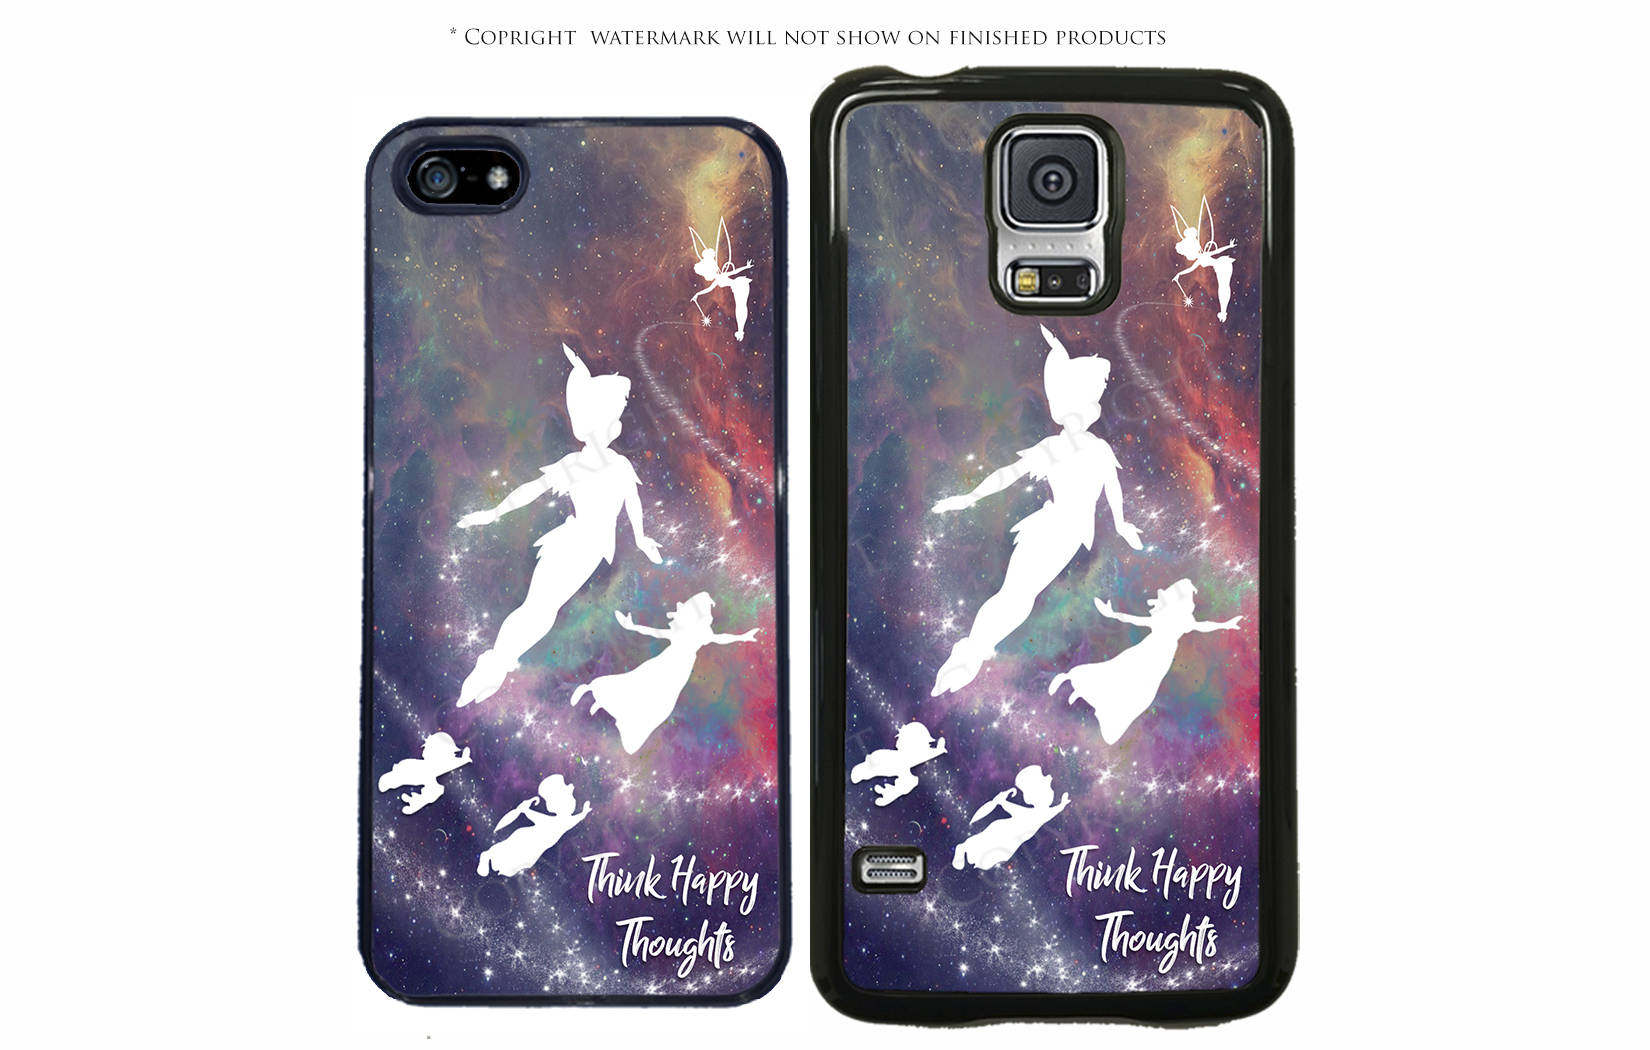 best sneakers a2b80 23954 Disney Peter Pan Think Happy Thoughts Phone Case For Samsung Galaxy S10,  S10Plus, S10E, 3A, S7 Edge, Note 8, LG G7, G7, Google Pixel 3, 3 XL